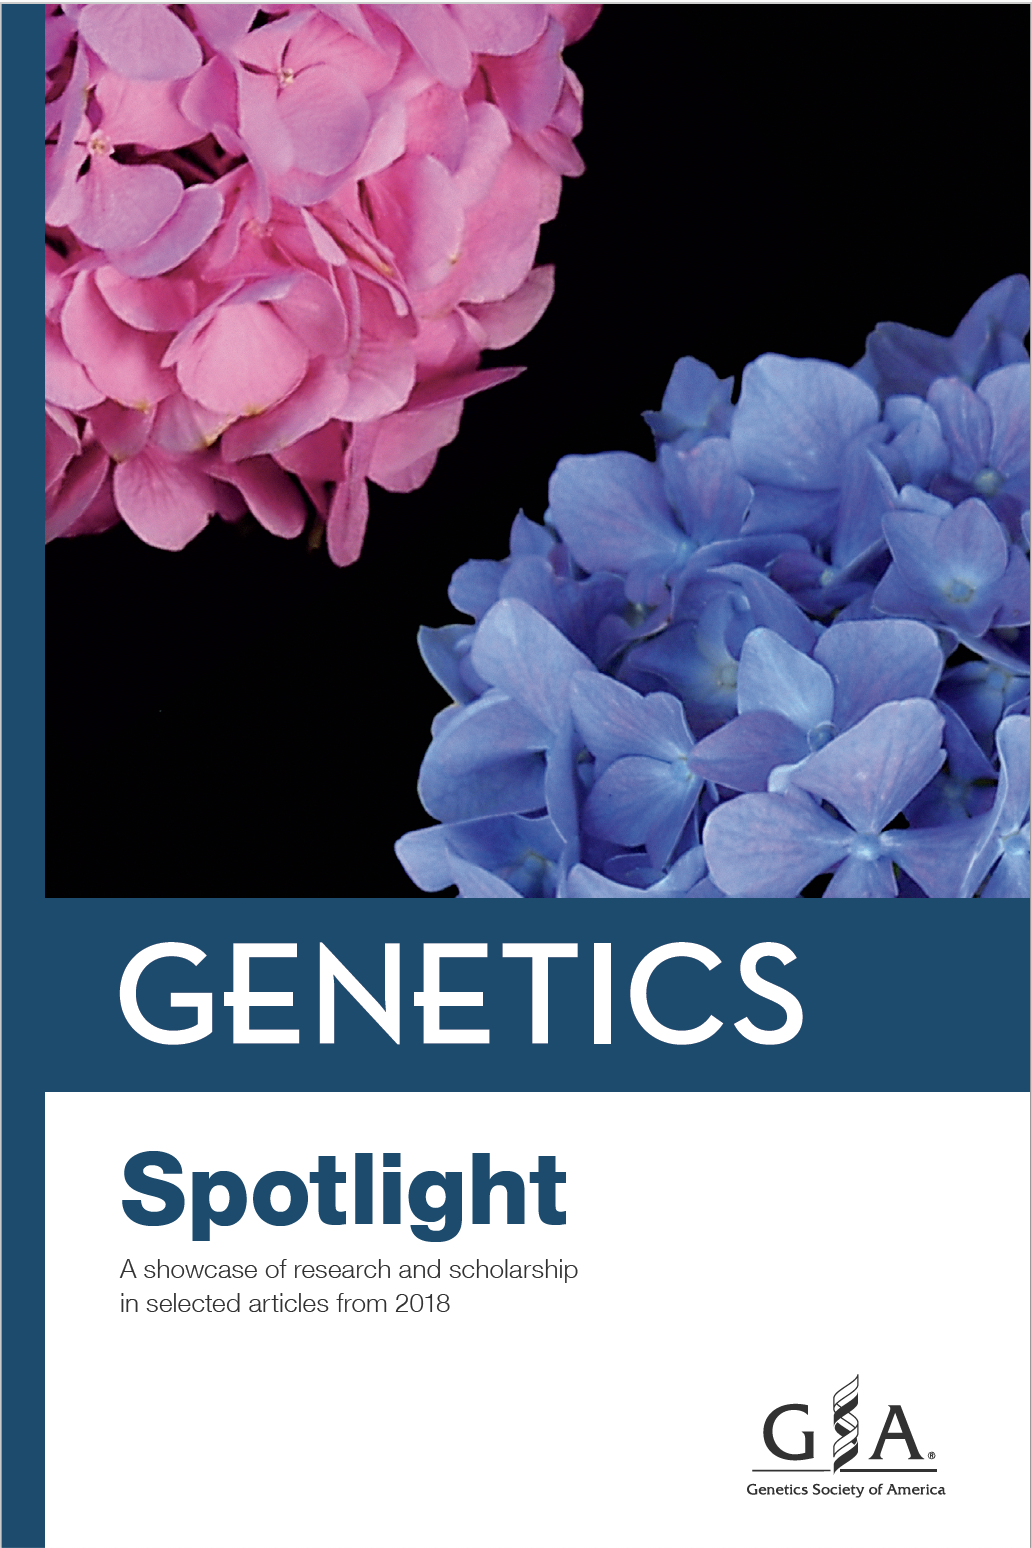 GENETICS 2018 Spotlight cover